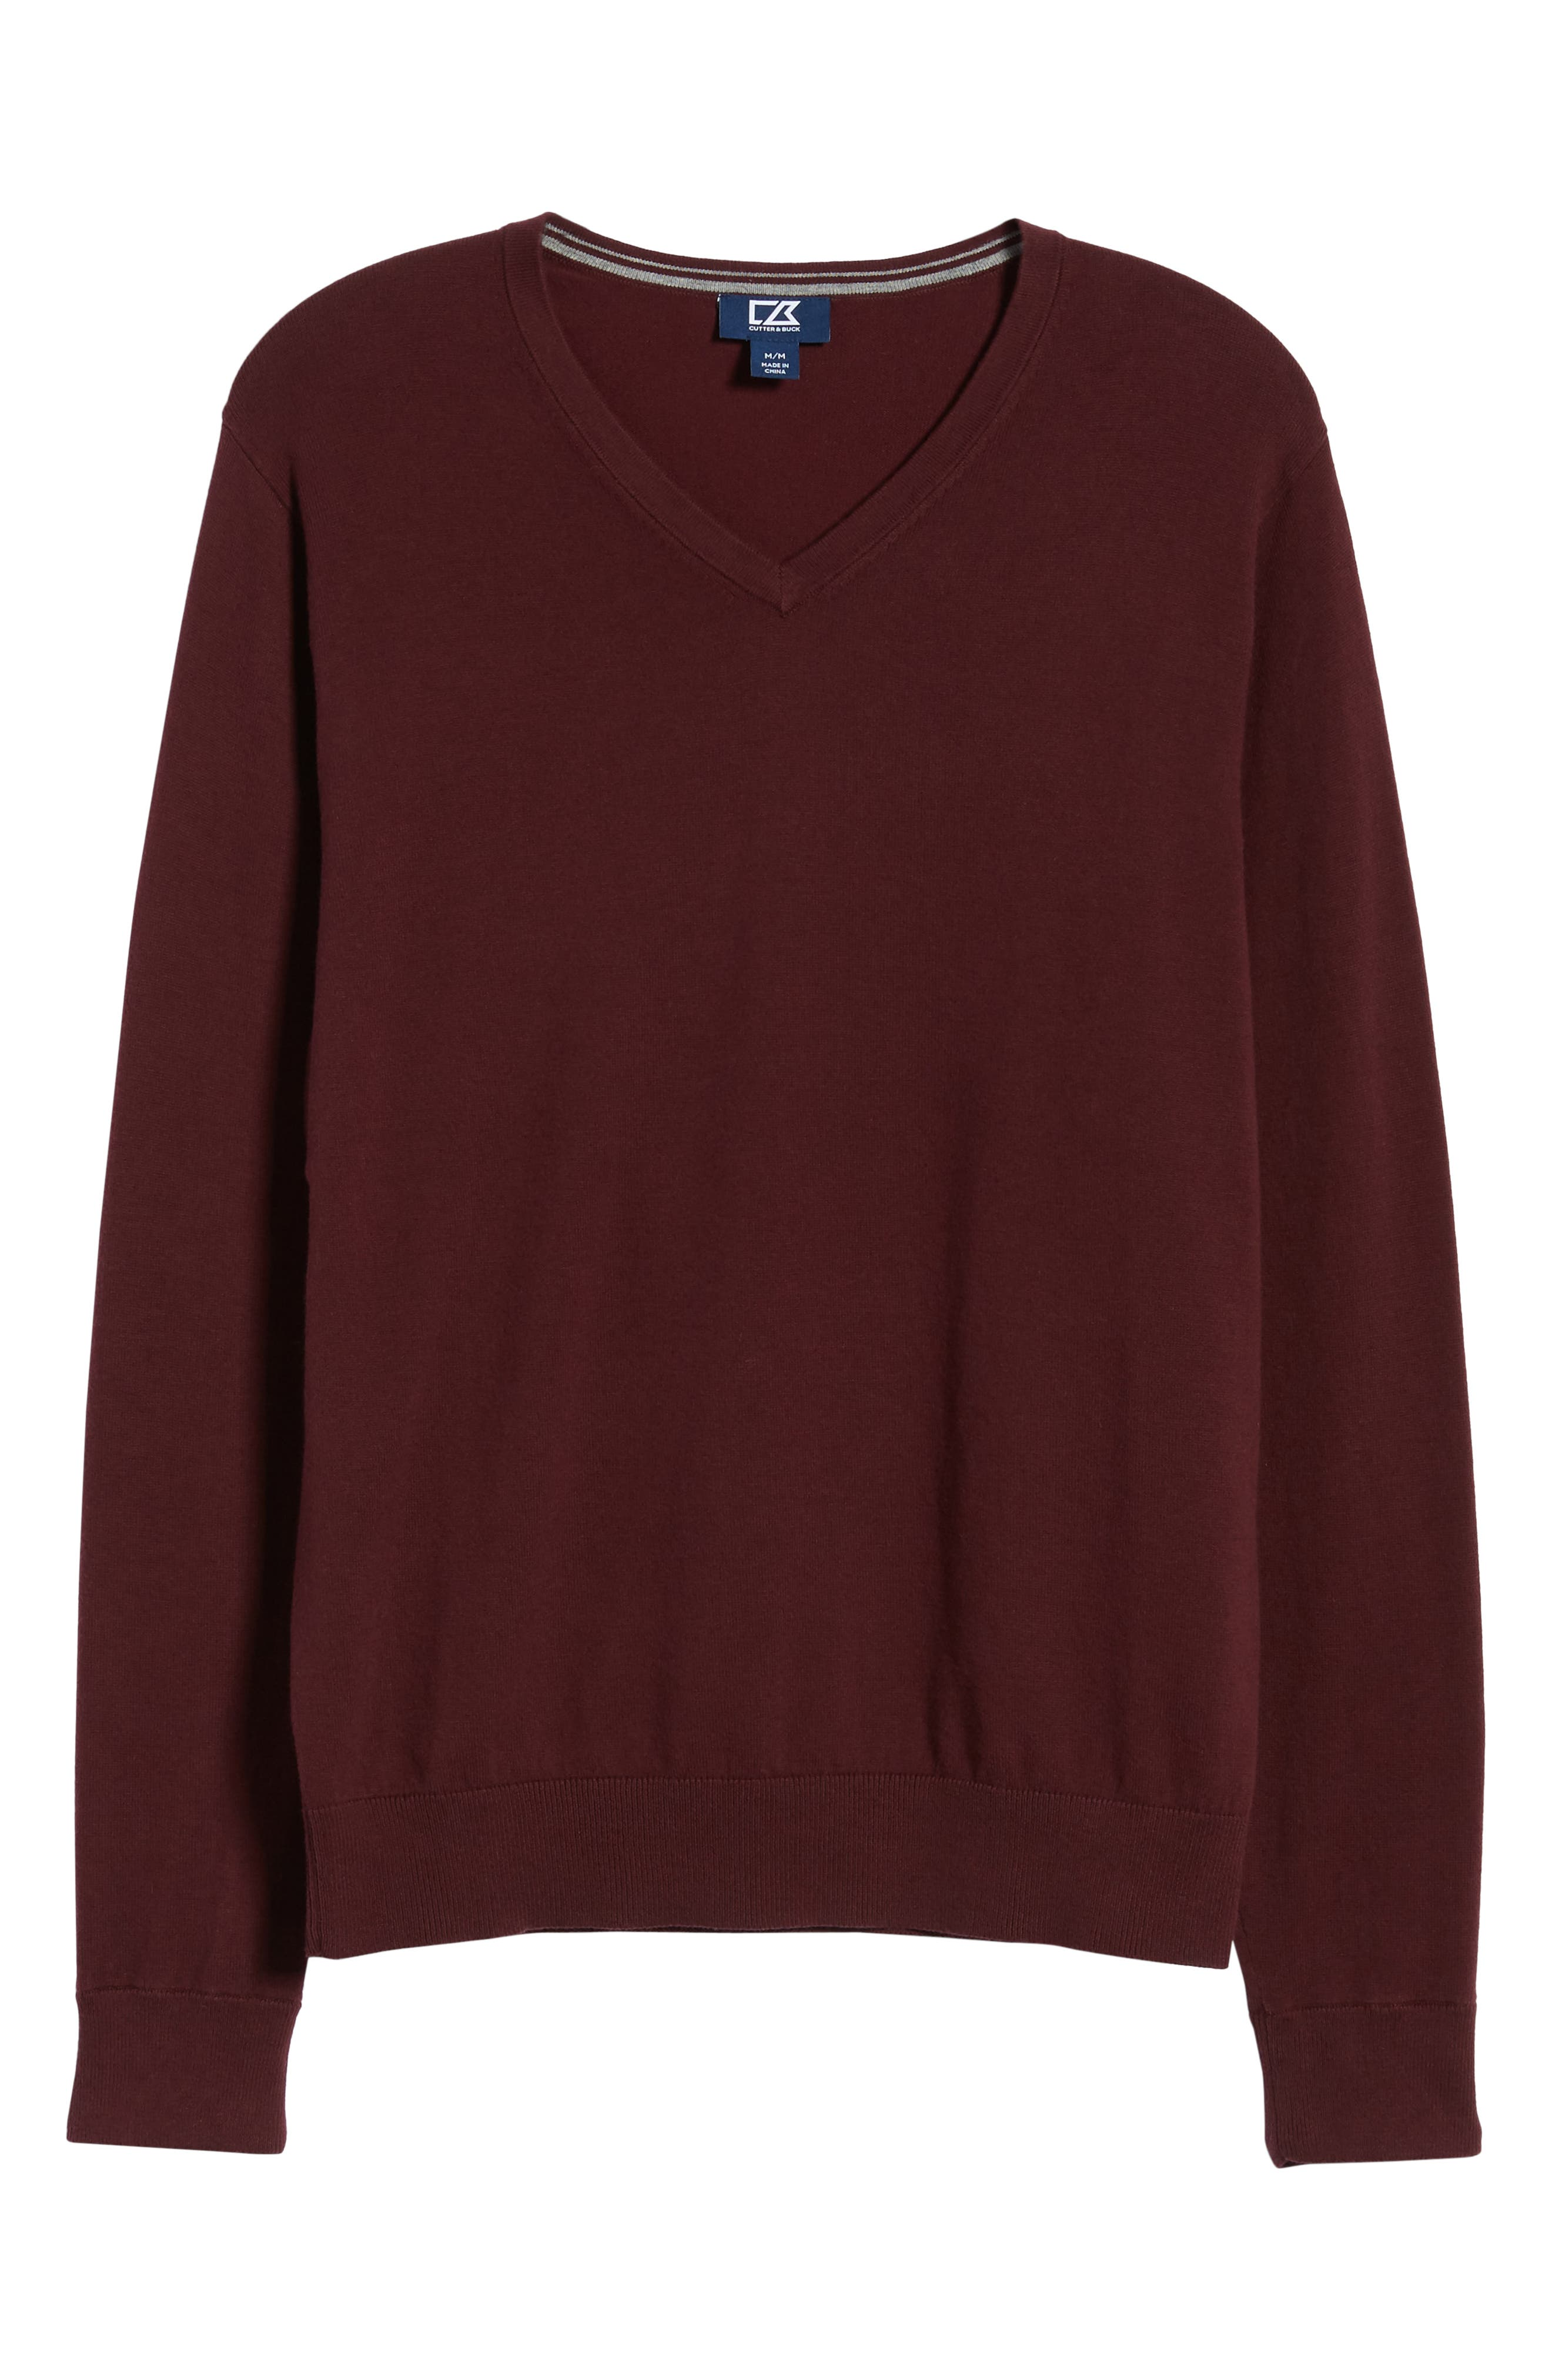 CUTTER & BUCK, Lakemont V-Neck Sweater, Alternate thumbnail 6, color, BORDEAUX